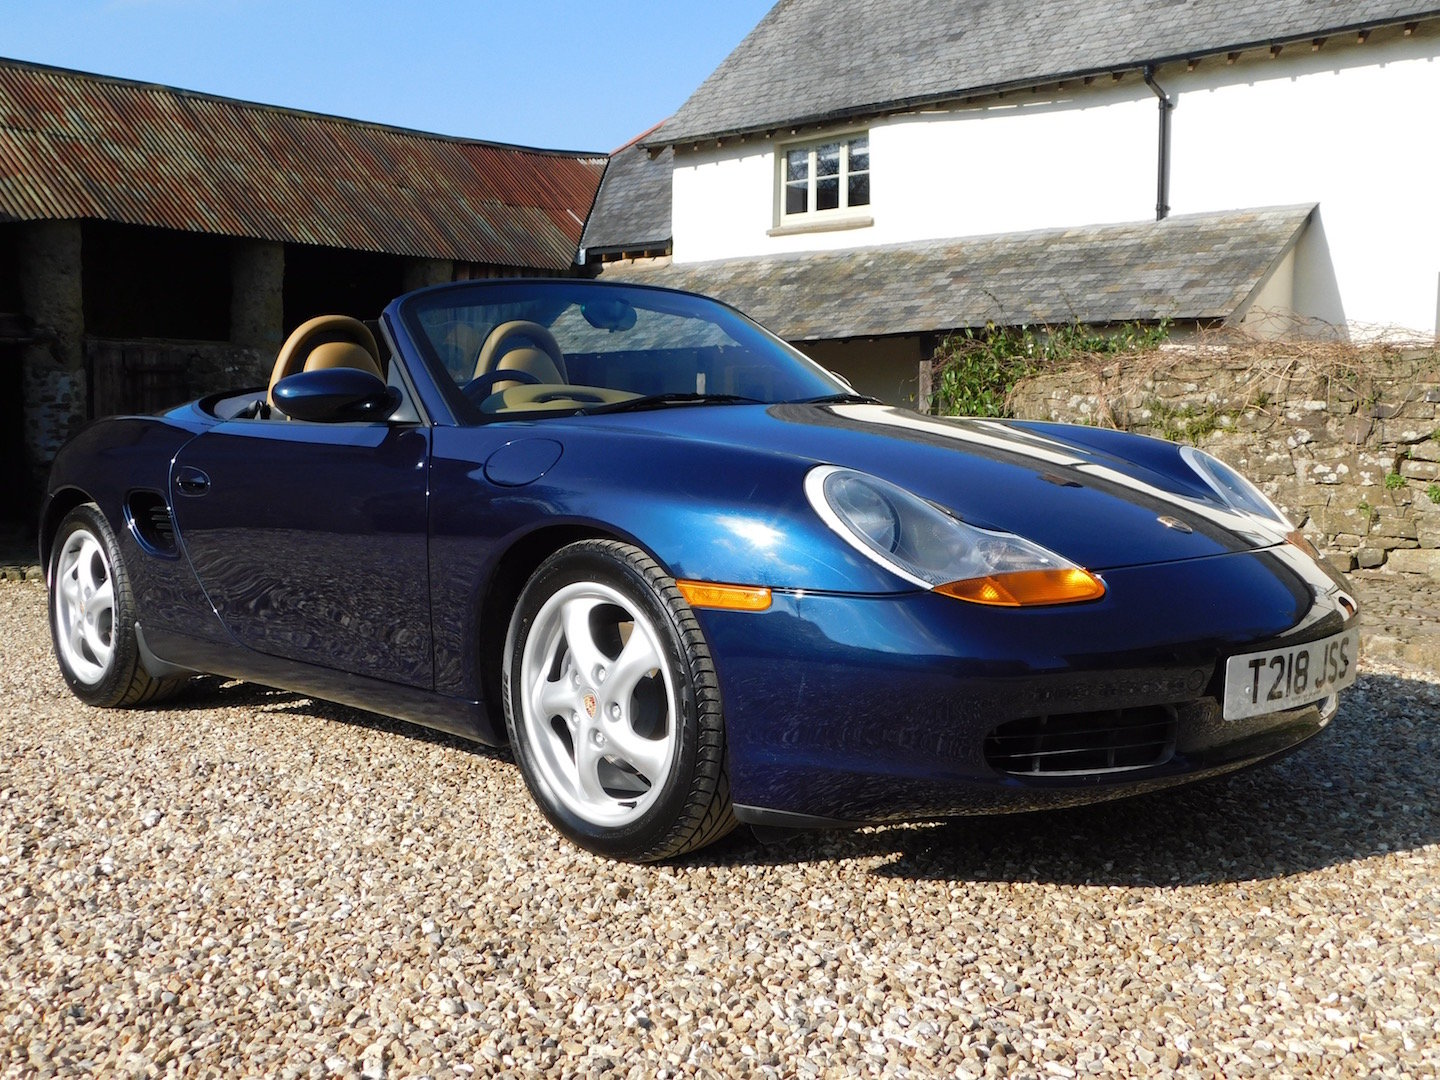 1999 Porsche Boxster 2.5 manual - 16k miles, 2 owners, incredible For Sale (picture 1 of 6)